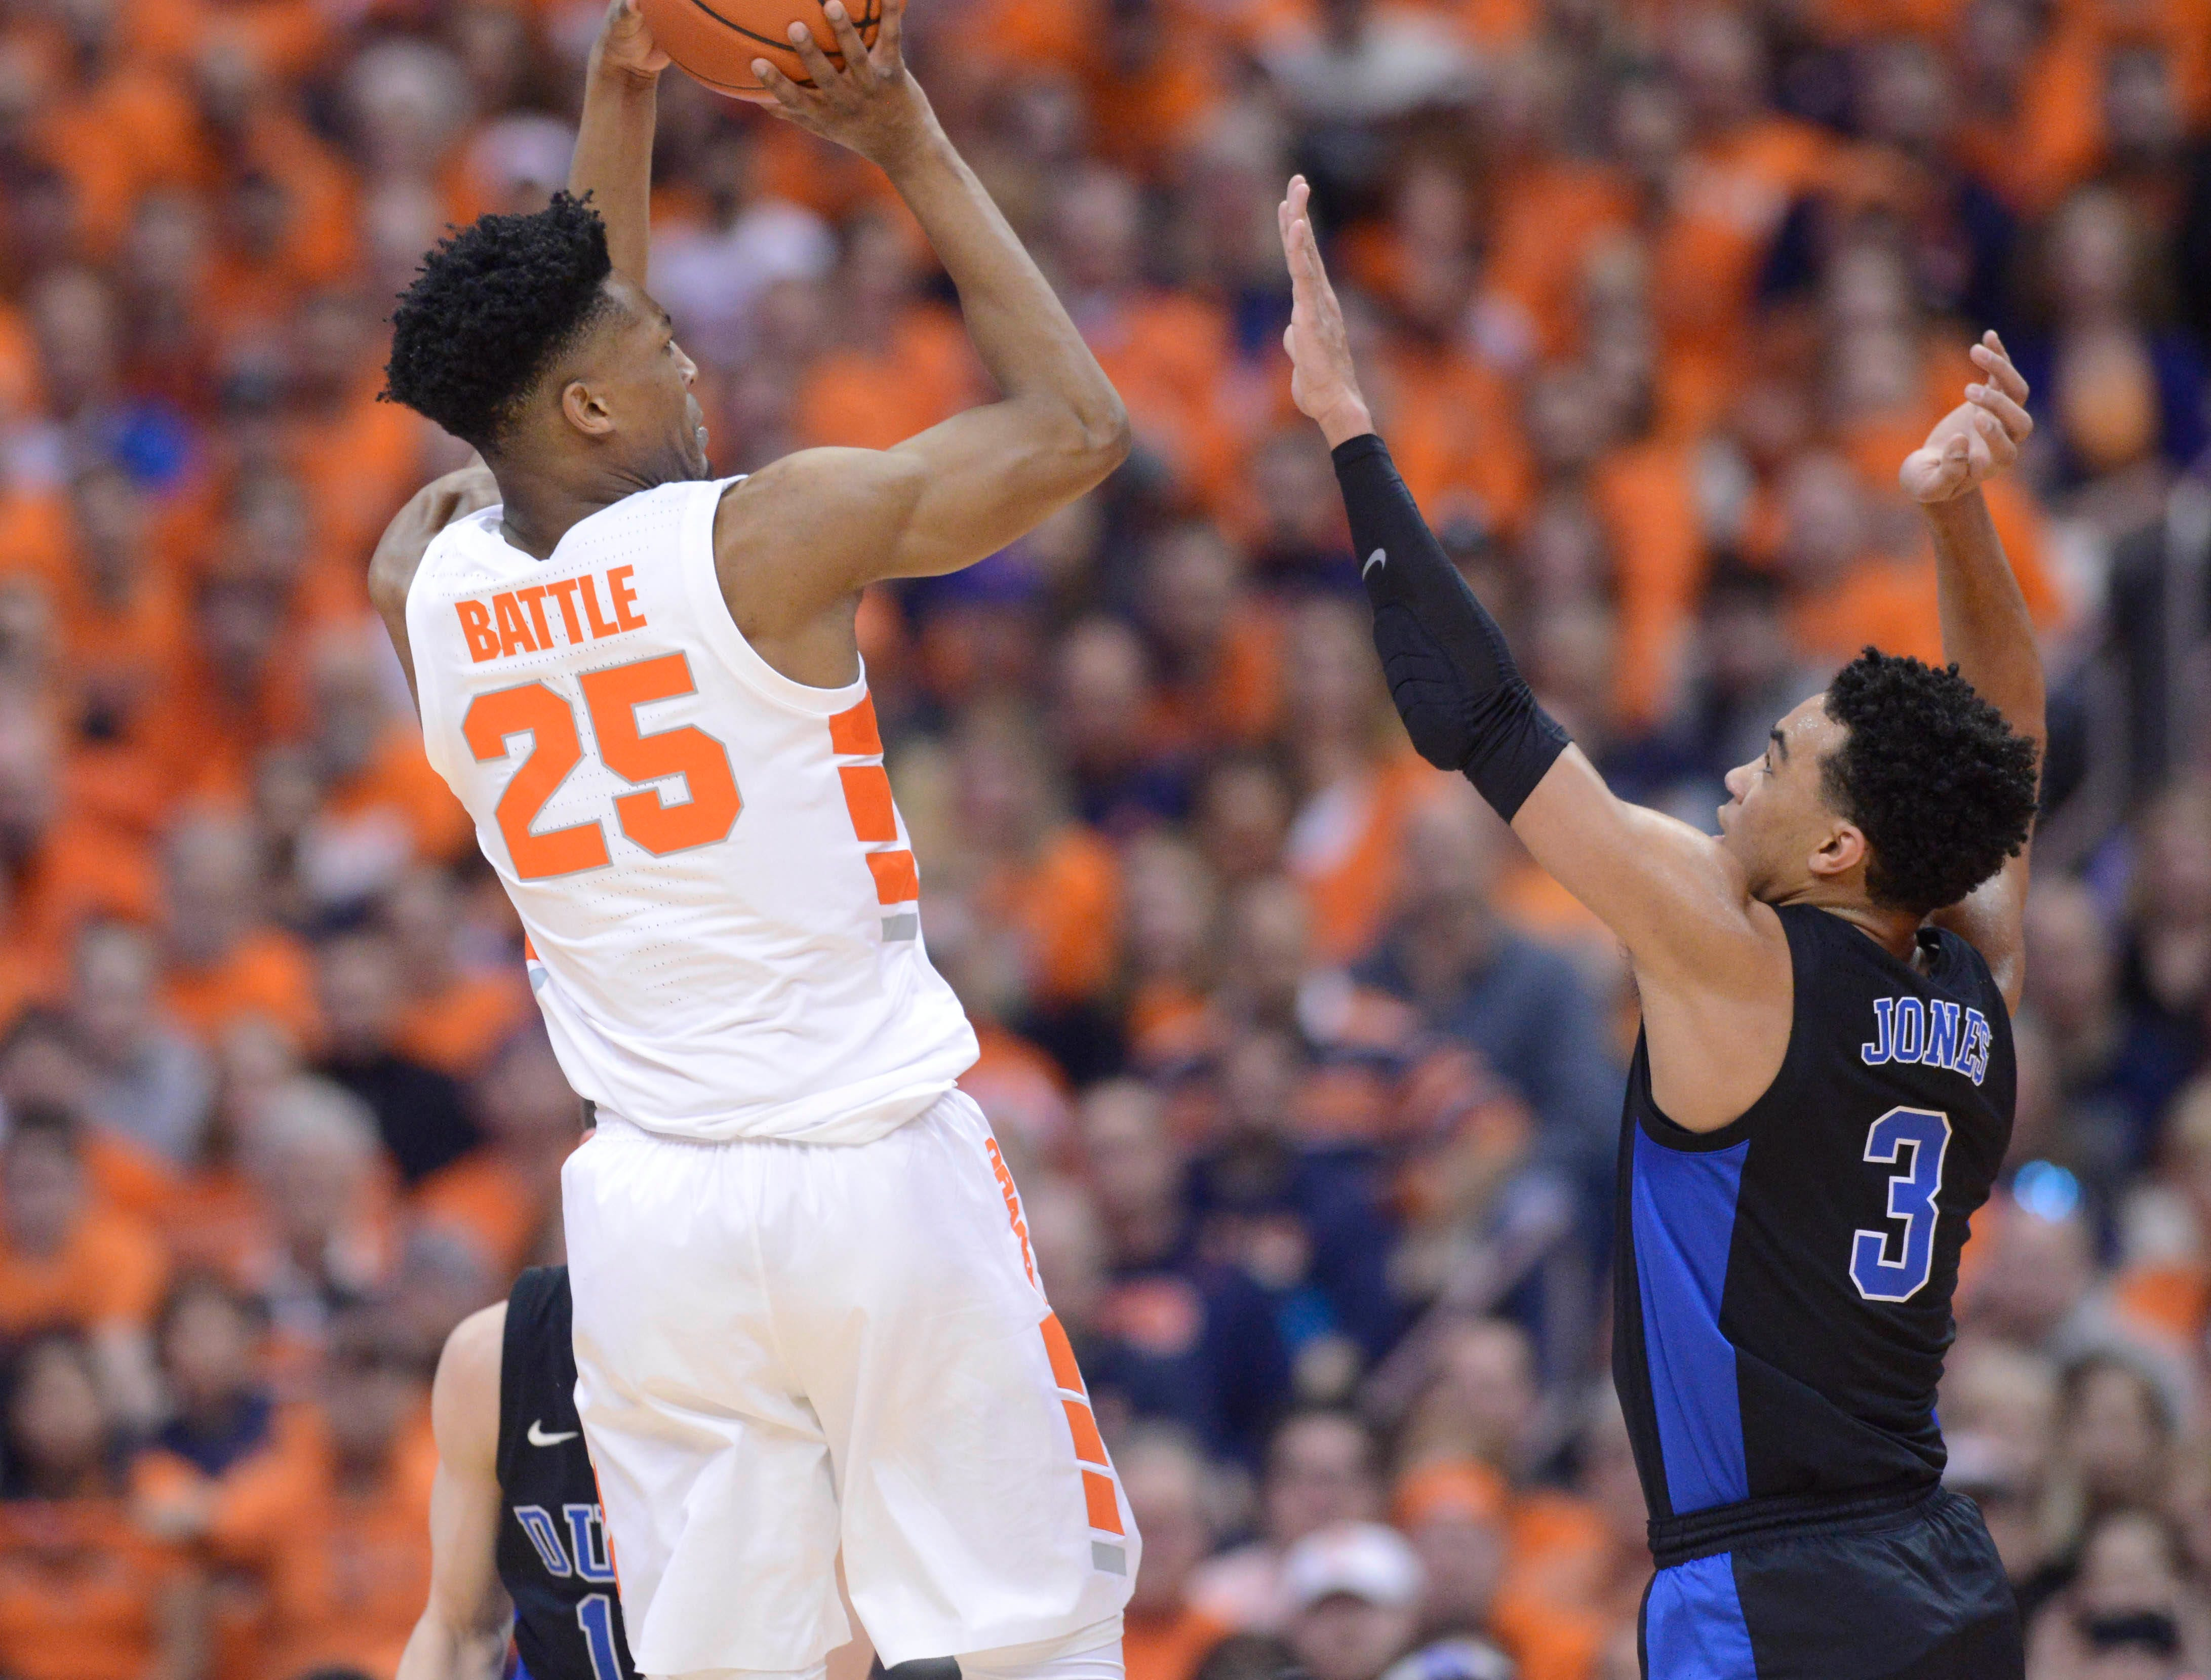 Feb 23, 2019; Syracuse, NY, USA; Syracuse Orange guard Tyus Battle (25) takes a jump shot as Duke Blue Devils guard Tre Jones (3) defends in the first half at the Carrier Dome. Mandatory Credit: Mark Konezny-USA TODAY Sports